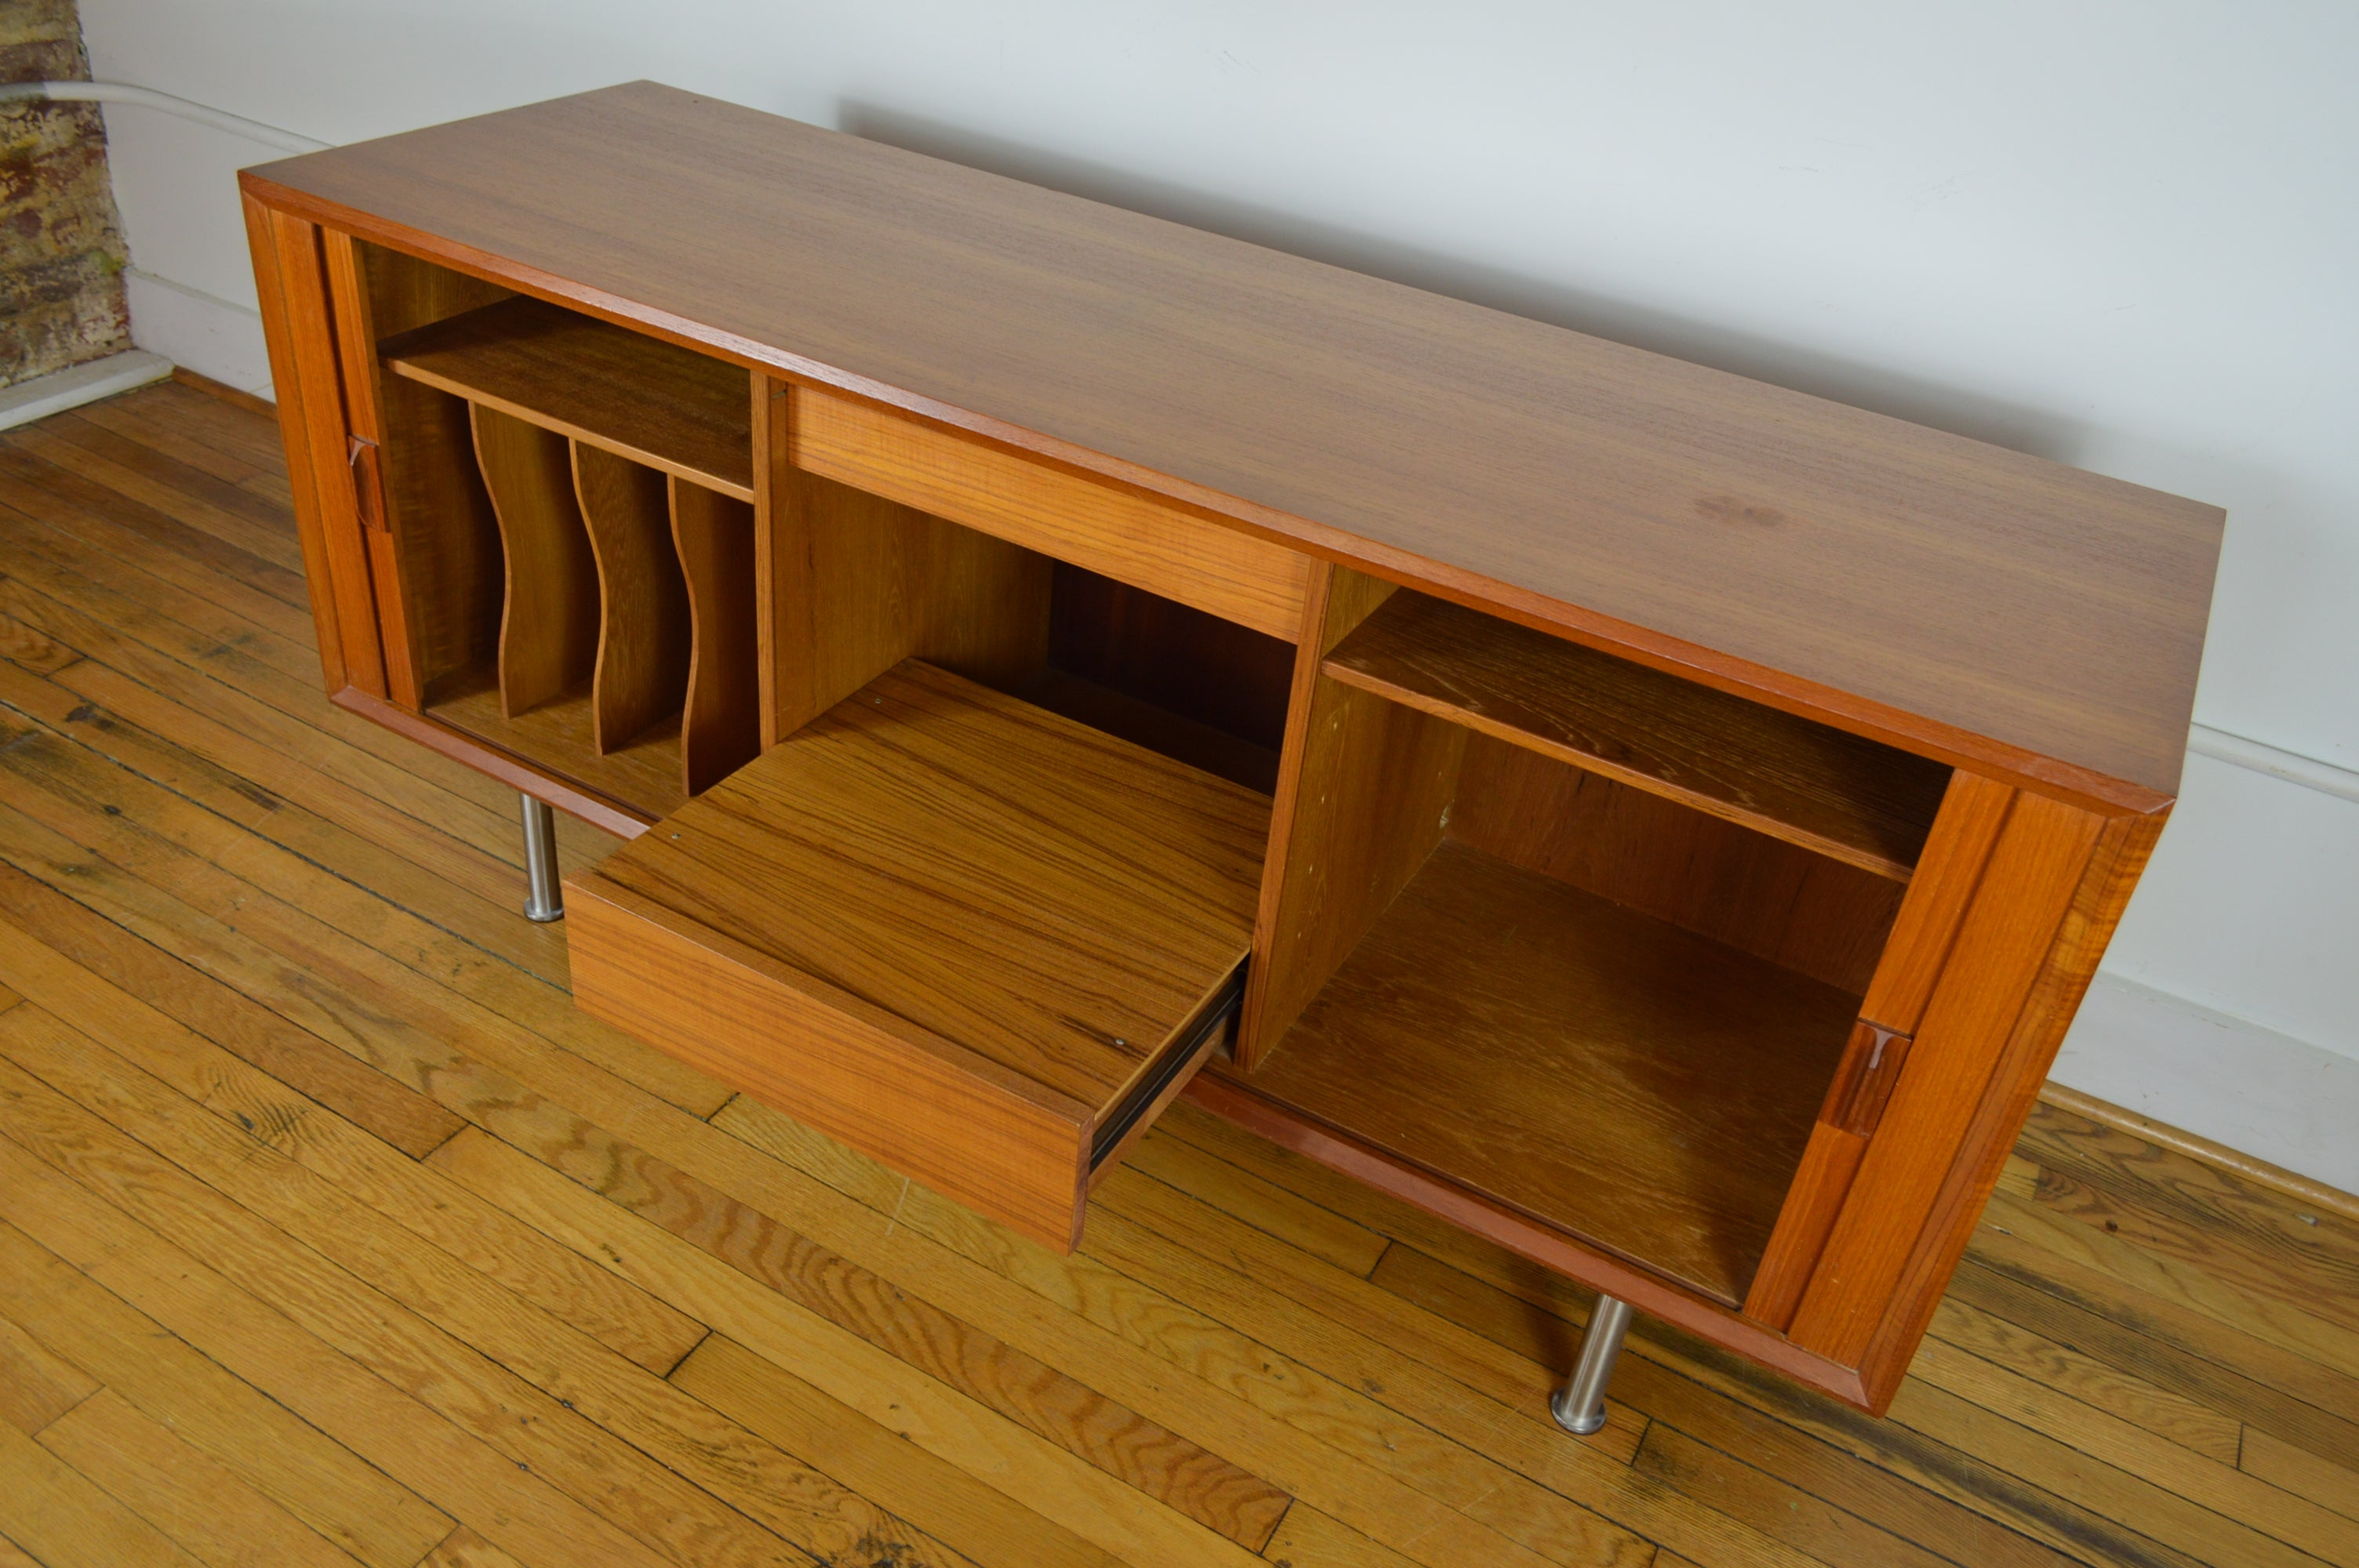 Faarup Danish Mid Century Modern Teak Stereo Console Compact Credenza